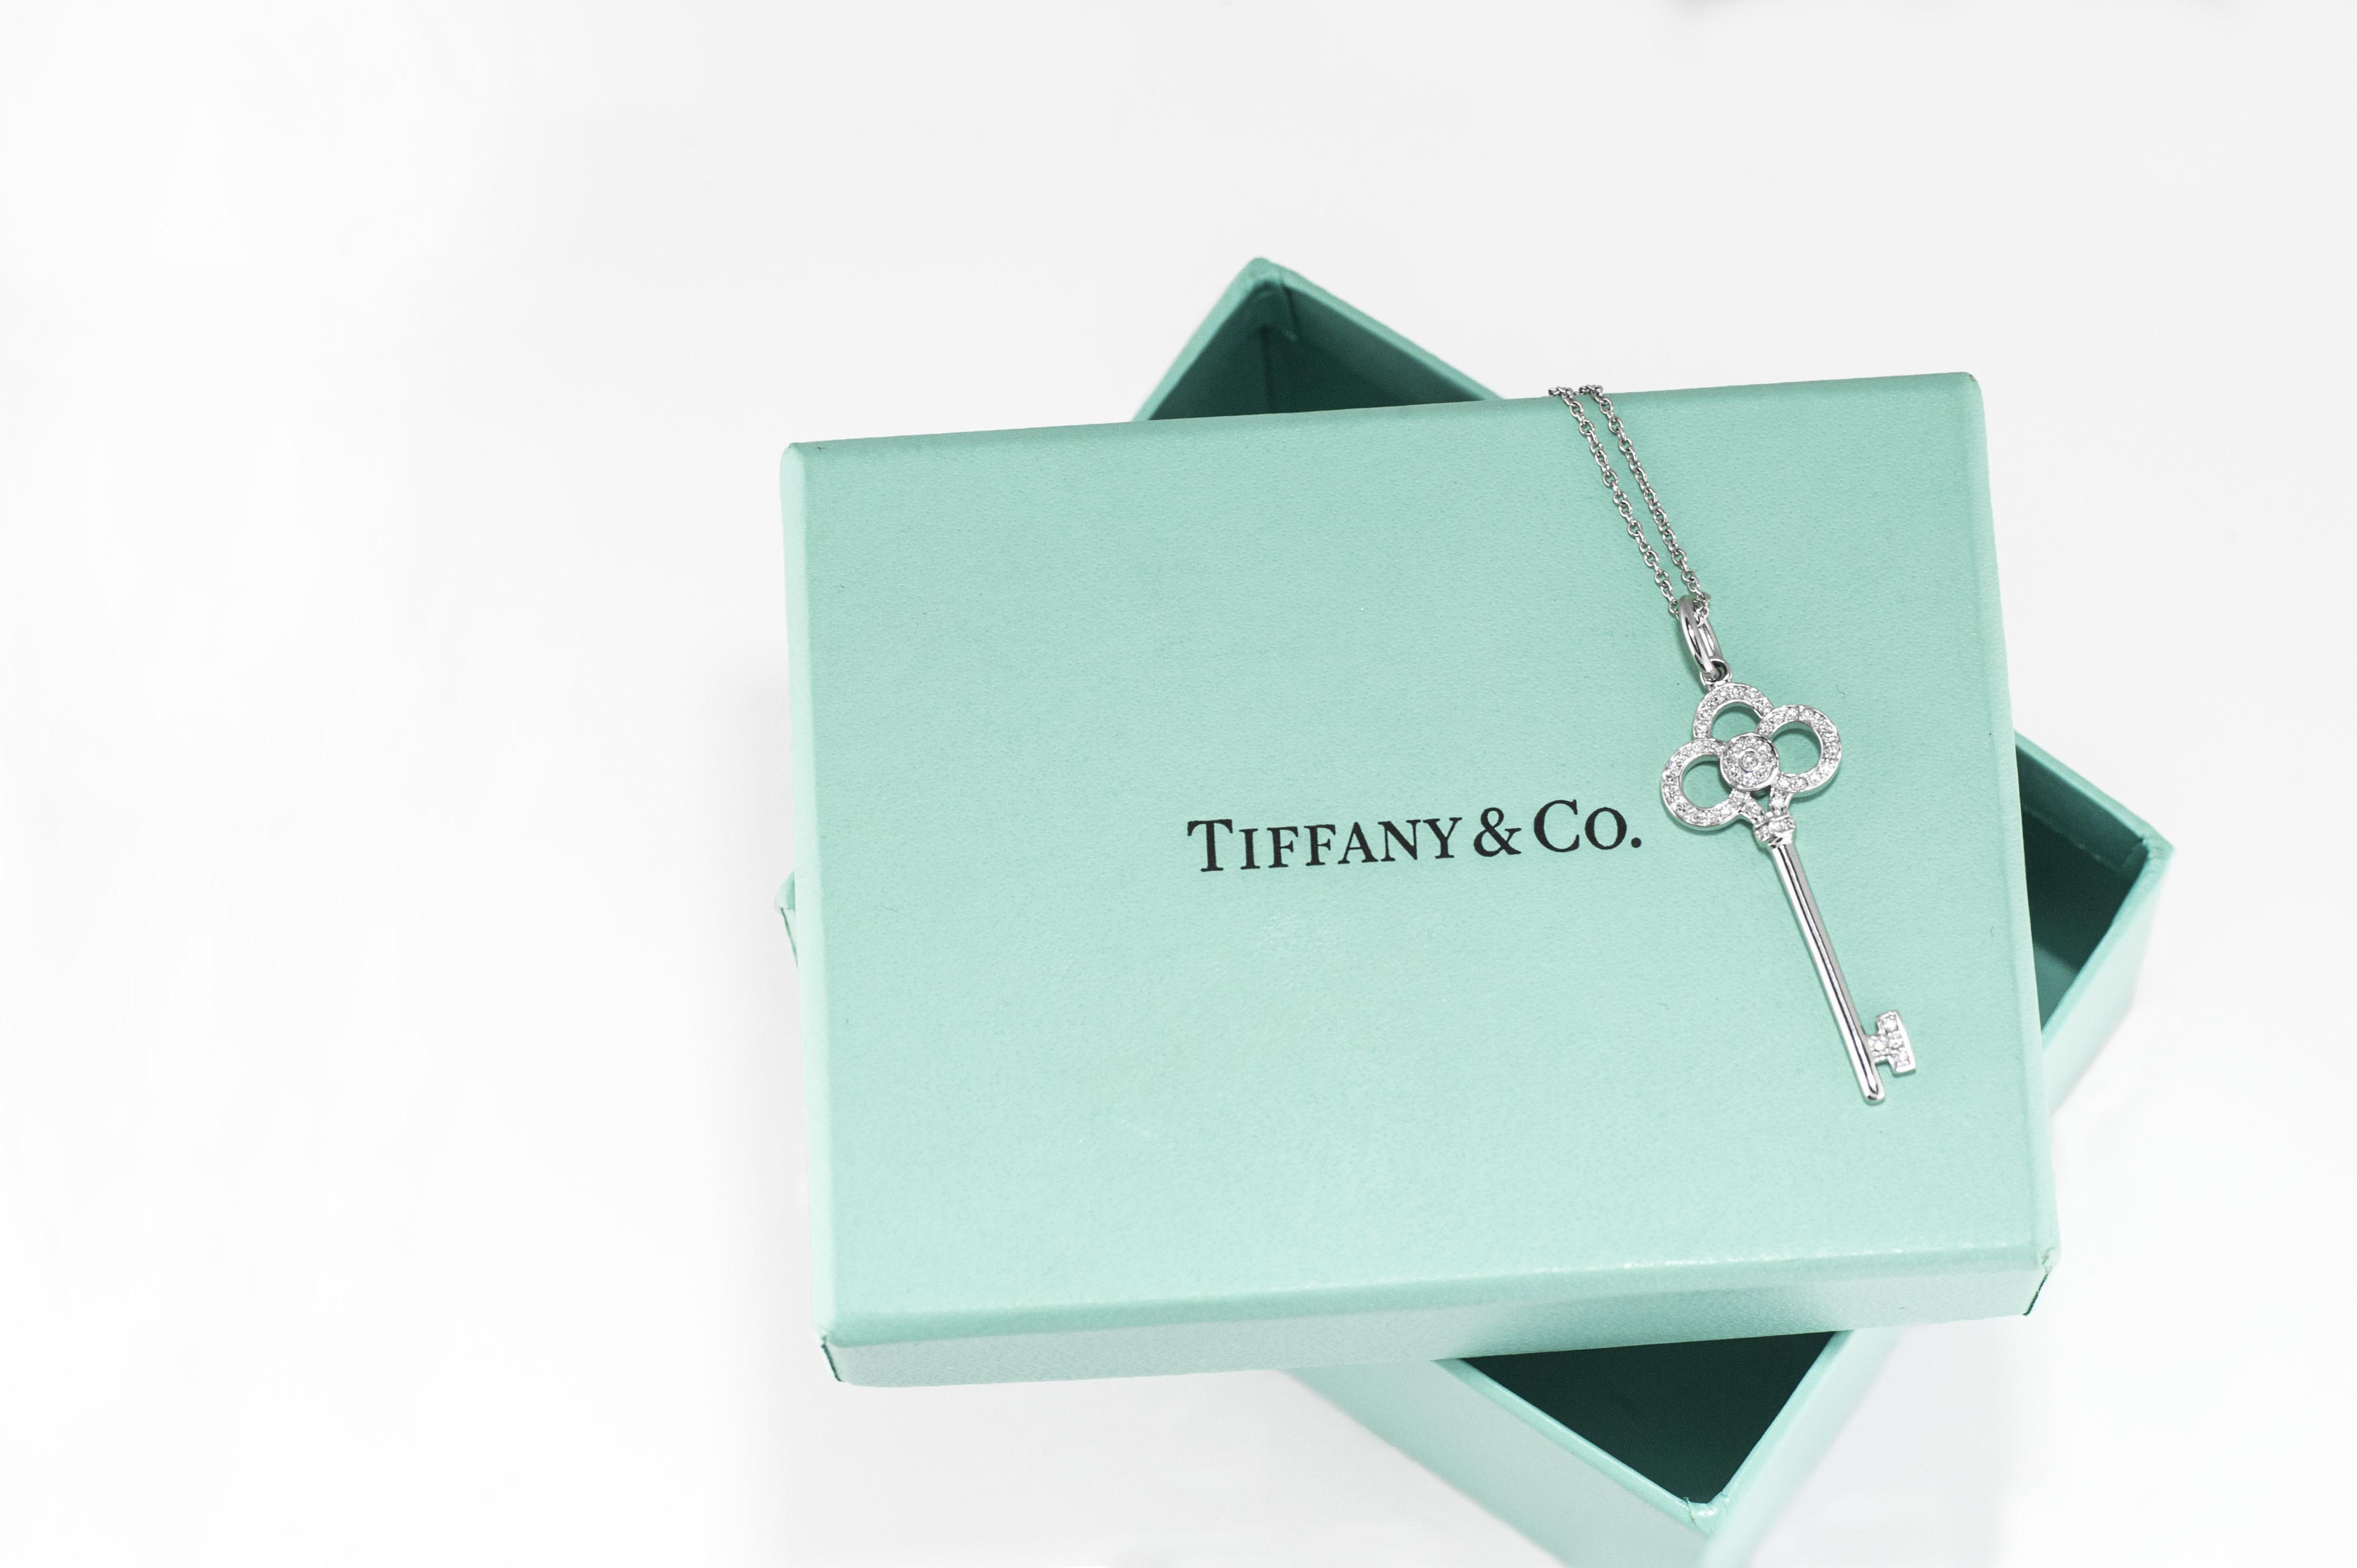 Tiffany Co 10 Fascinating Facts You Never Knew Leo Hamel Fine Jewelers Blog